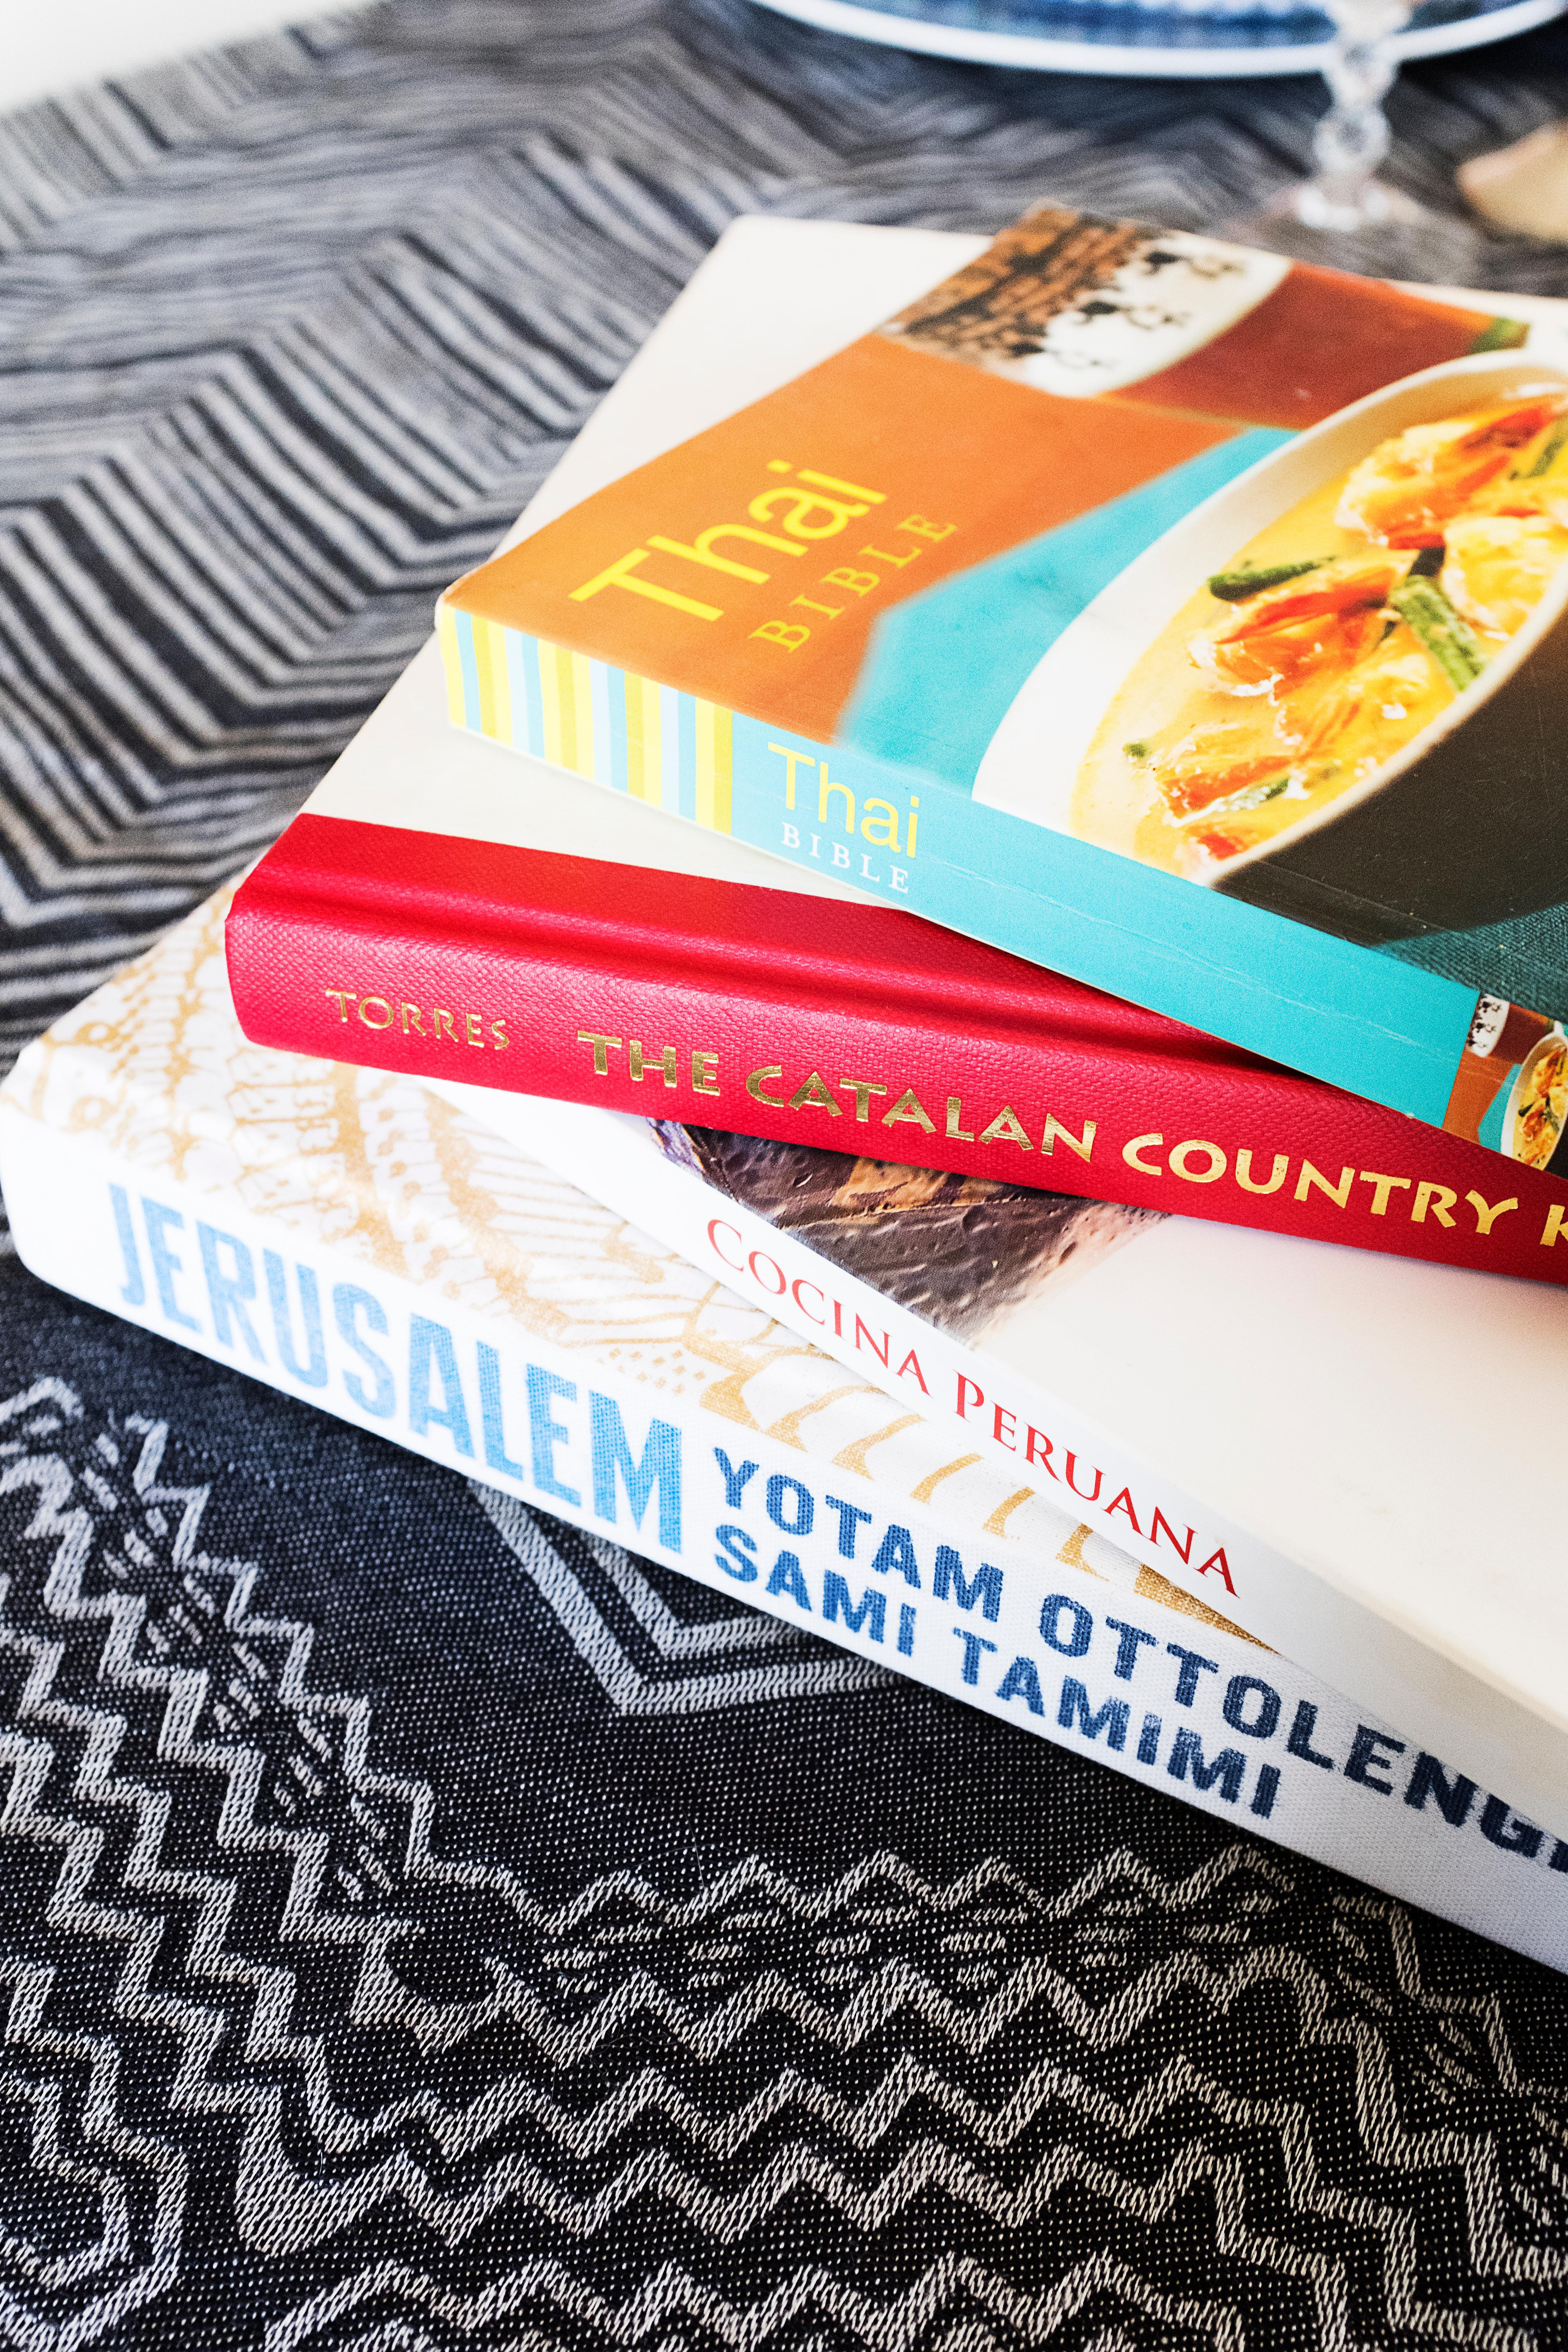 Plan a multi-course meal from a variety of your favorite cookbooks from around the world. But don't fret about preparing an elaborate meal, as it does not have to be fancy or hard. Choose dishes that you are inspired by your travels and that fit your comfort level of cooking. (Image: Ashley Hafstead)